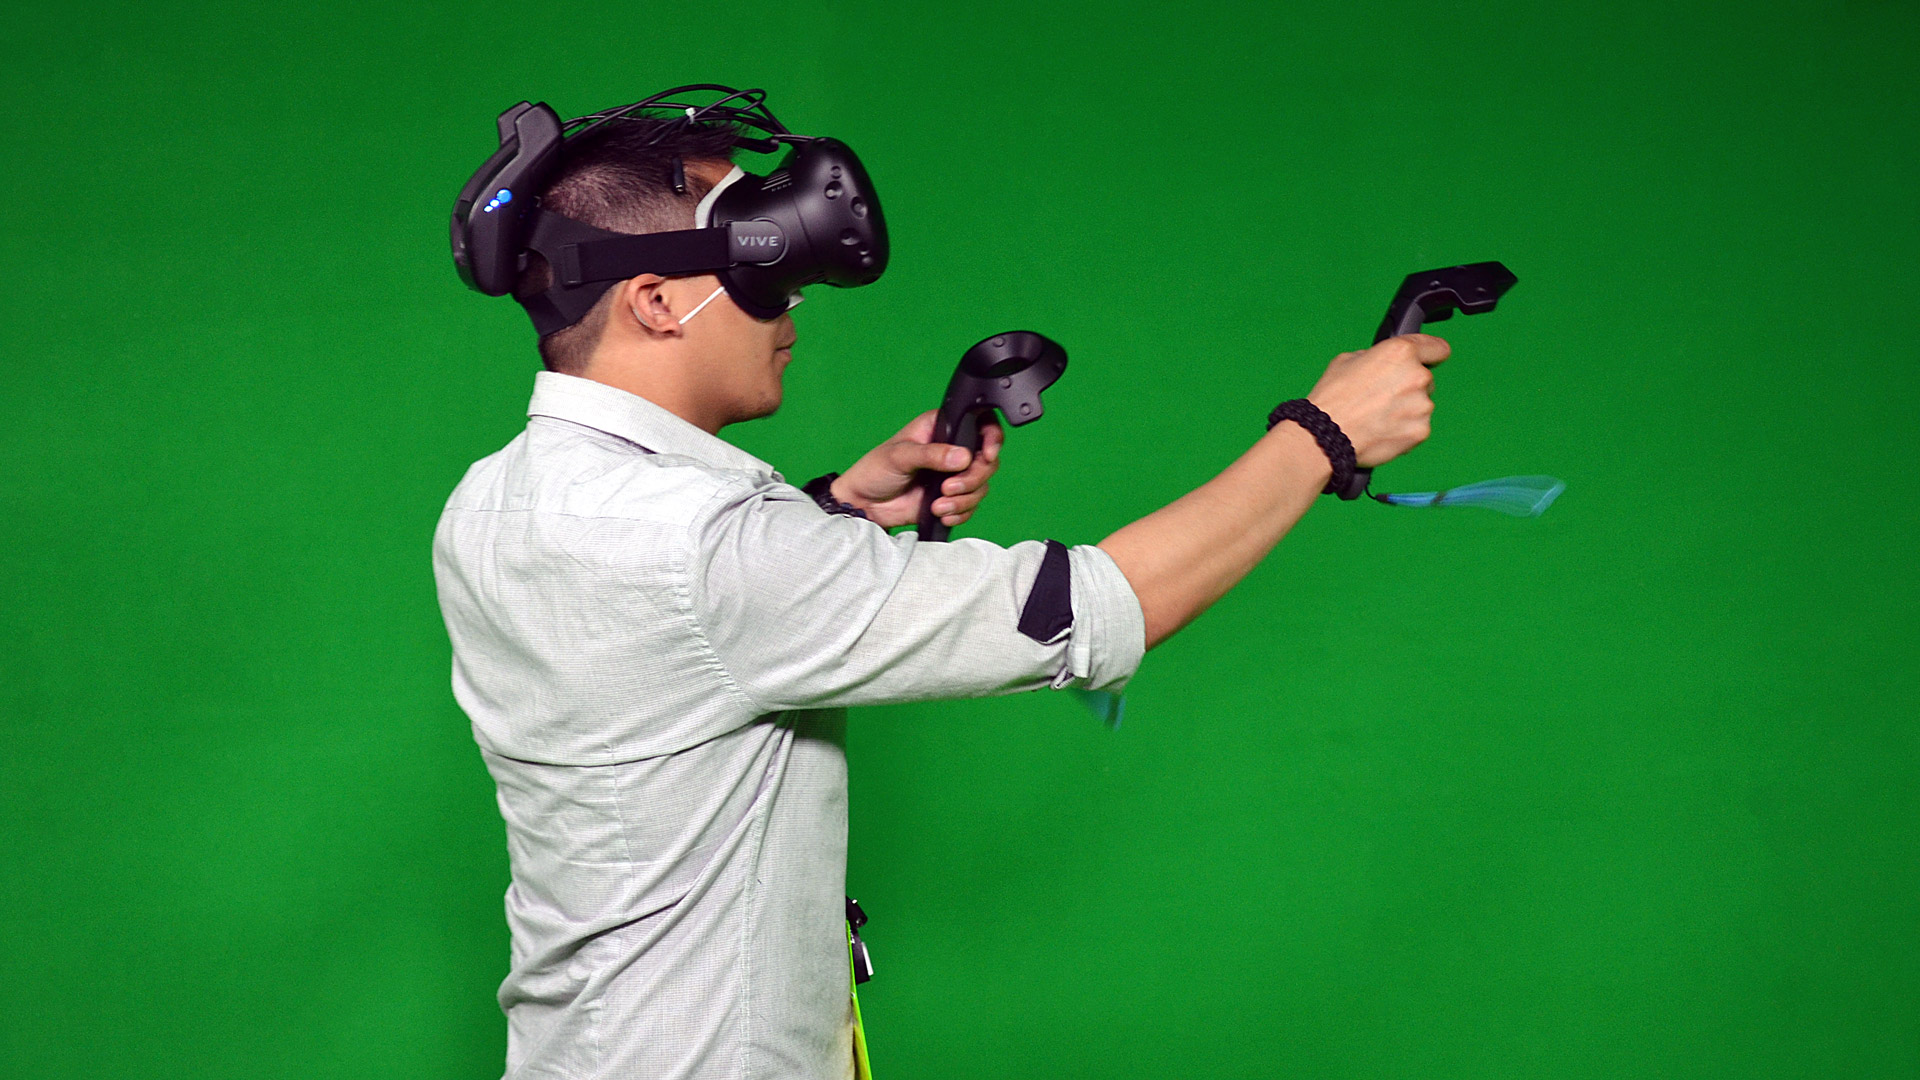 Hands On Displaylink Xr Wireless Vr Tech Is Top Notch Lighter Than Wiring Kit Subnautica Photo